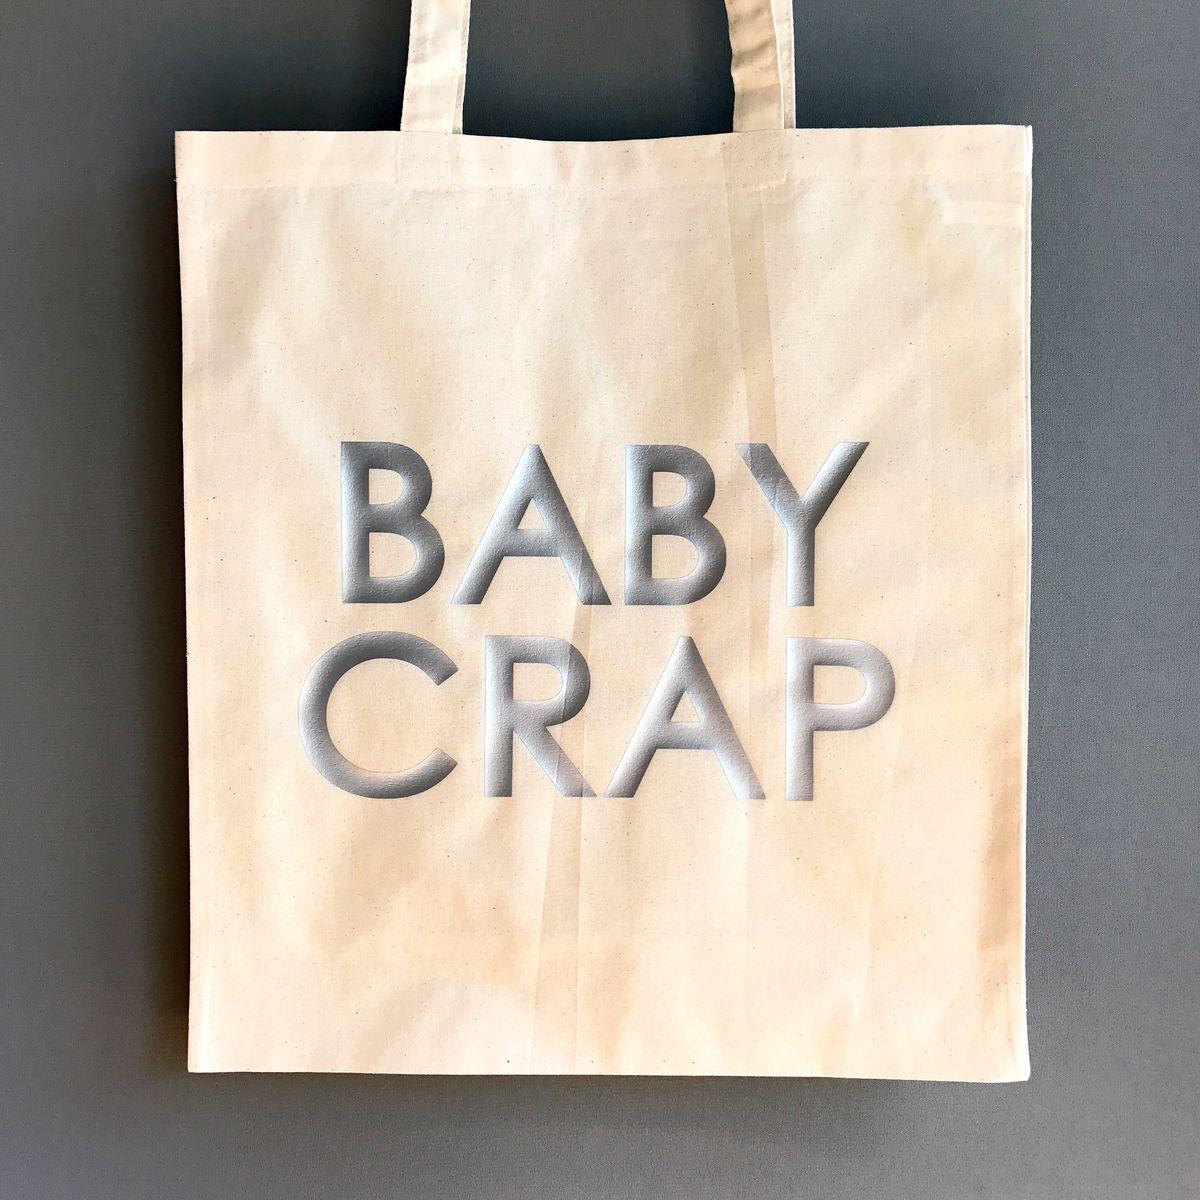 Gold/Silver/Black Baby Crap Tote Bag - product images  of